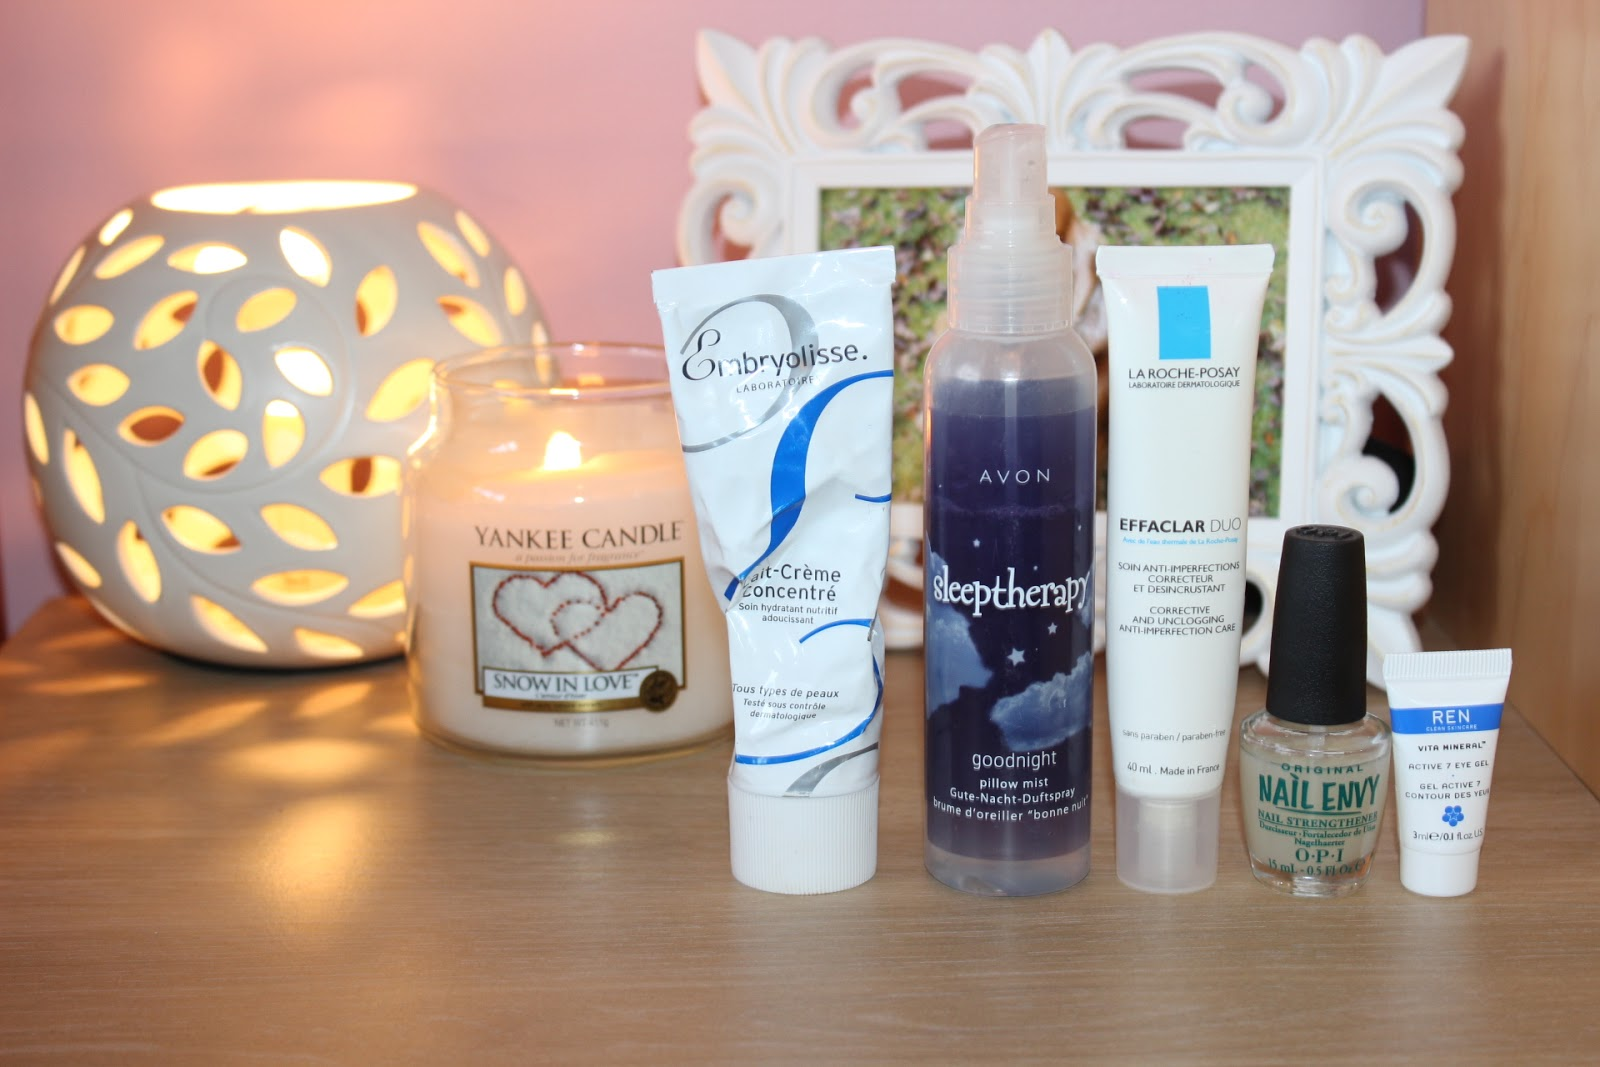 products used before bedtime